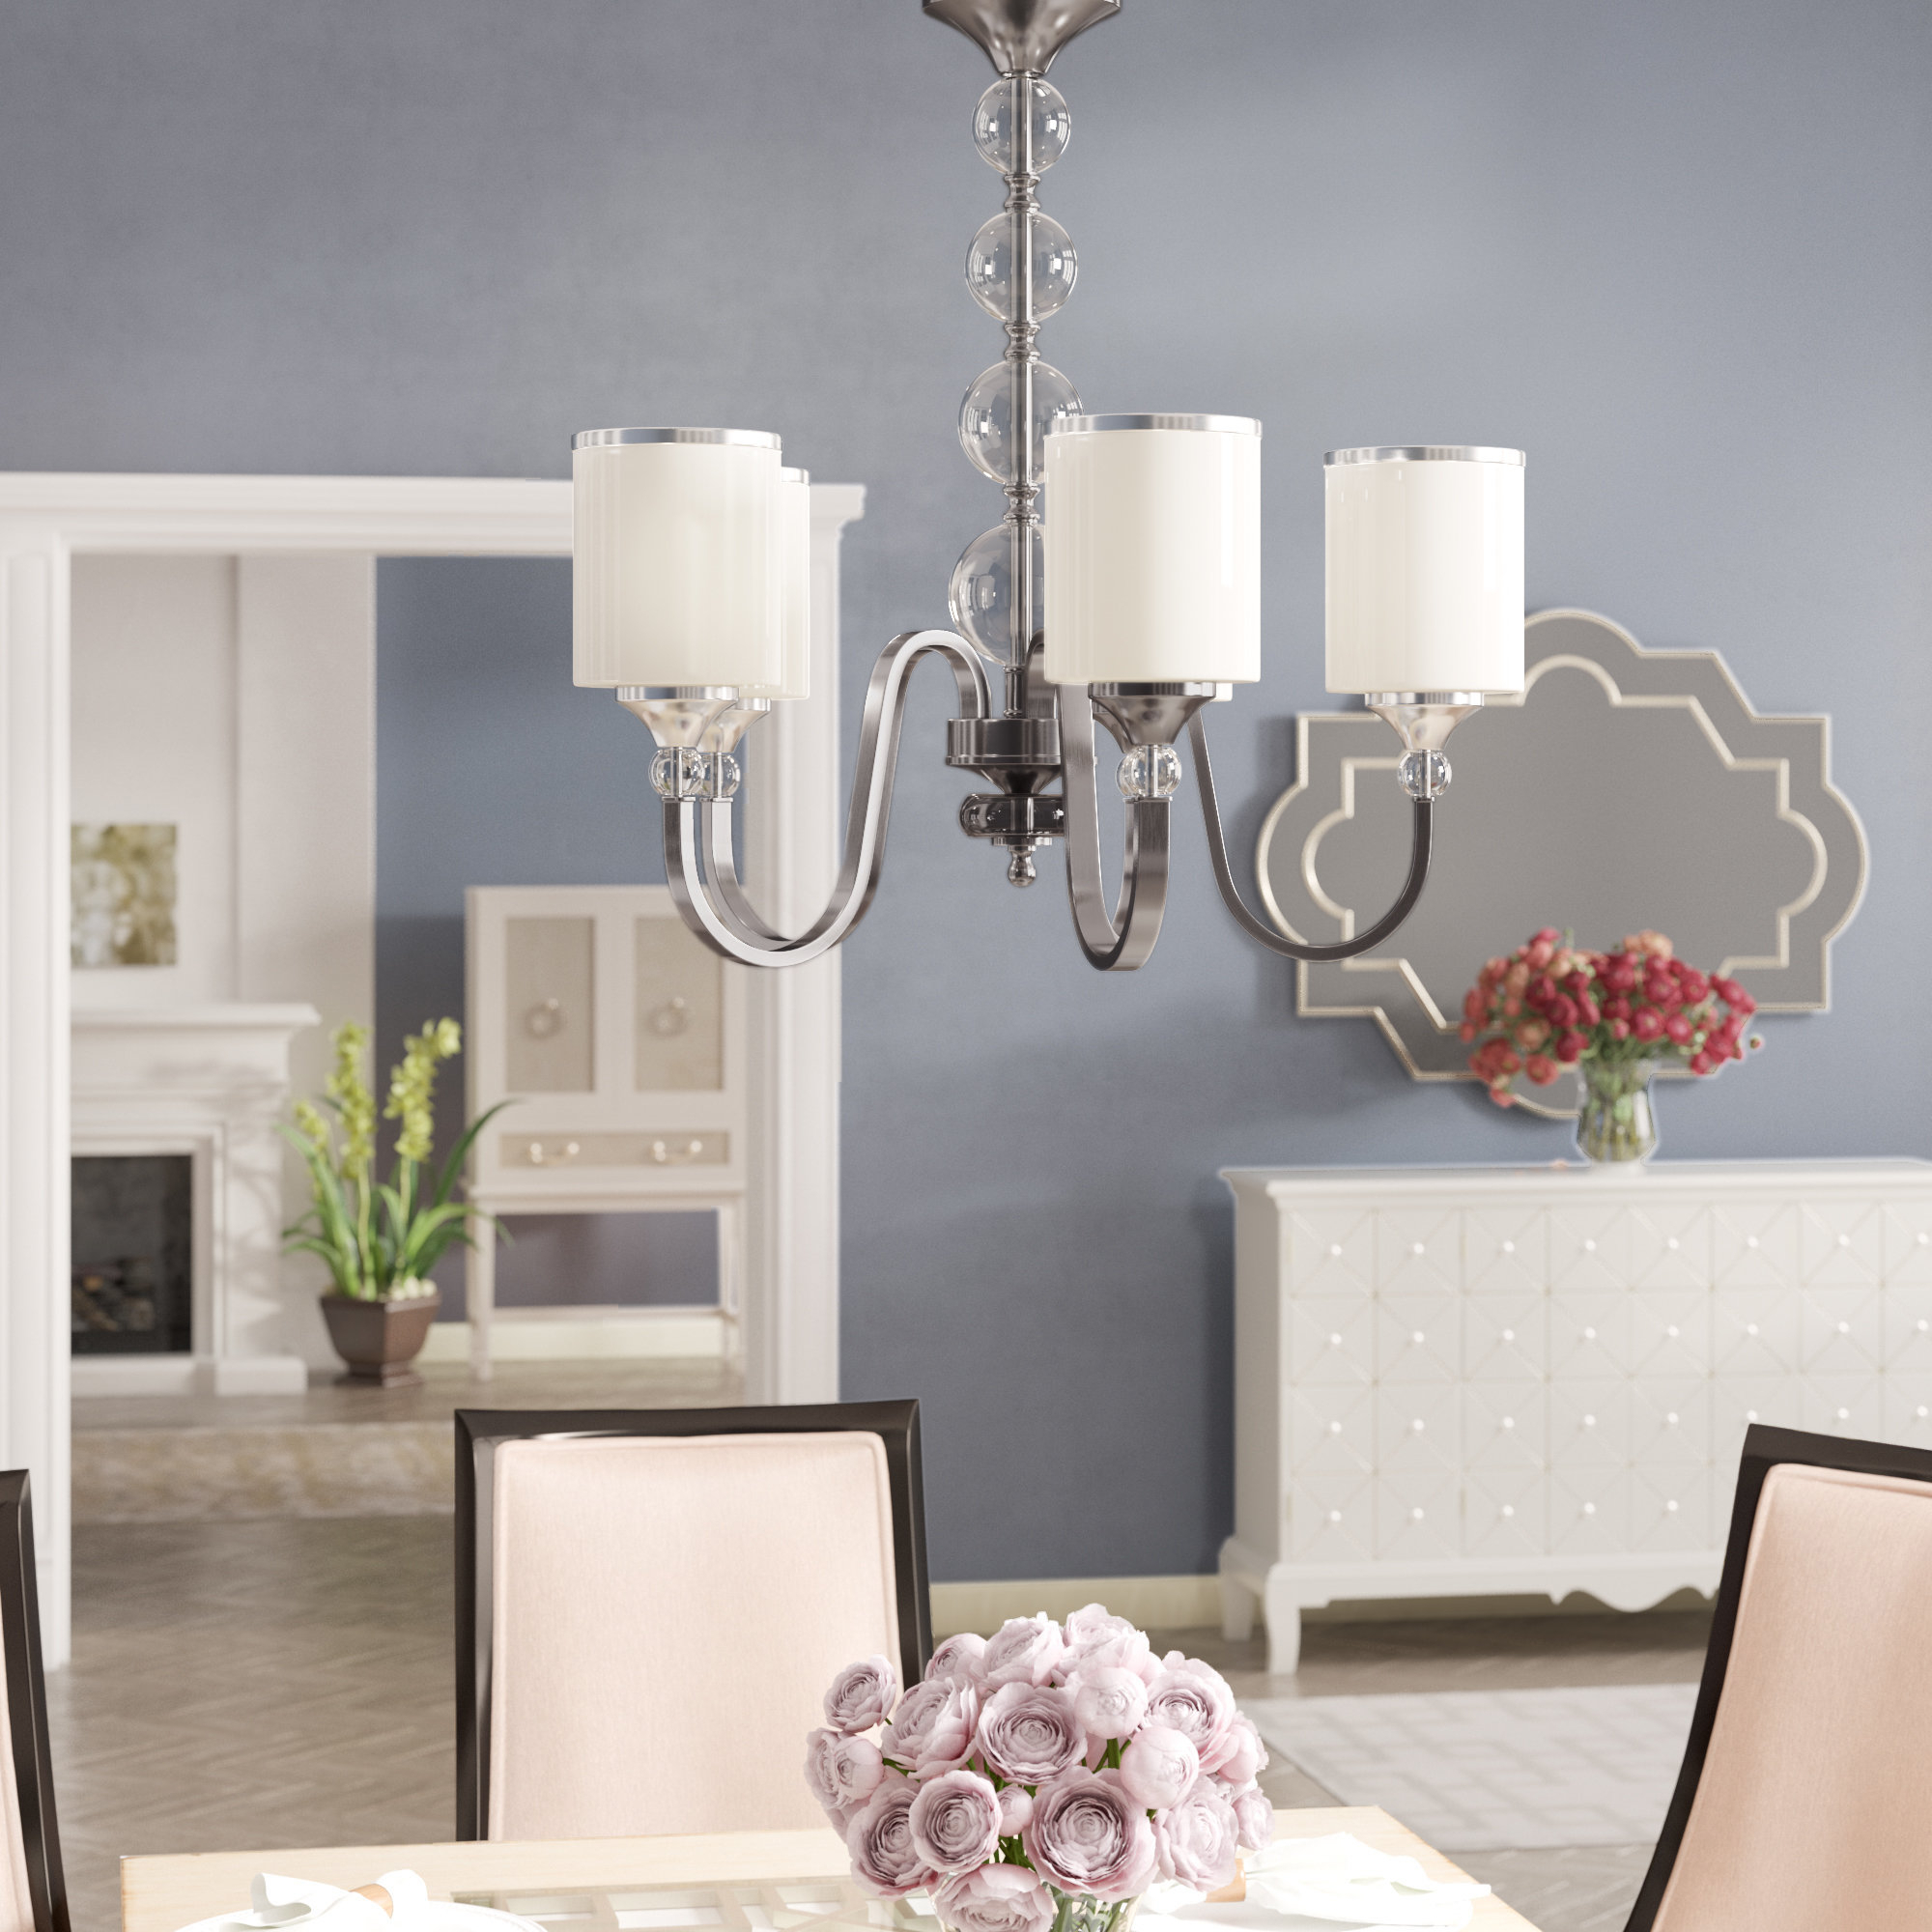 Corneau 5 Light Chandeliers With Most Up To Date Willa Arlo Interiors Carlitos 5 Light Shaded Chandelier (Gallery 7 of 20)